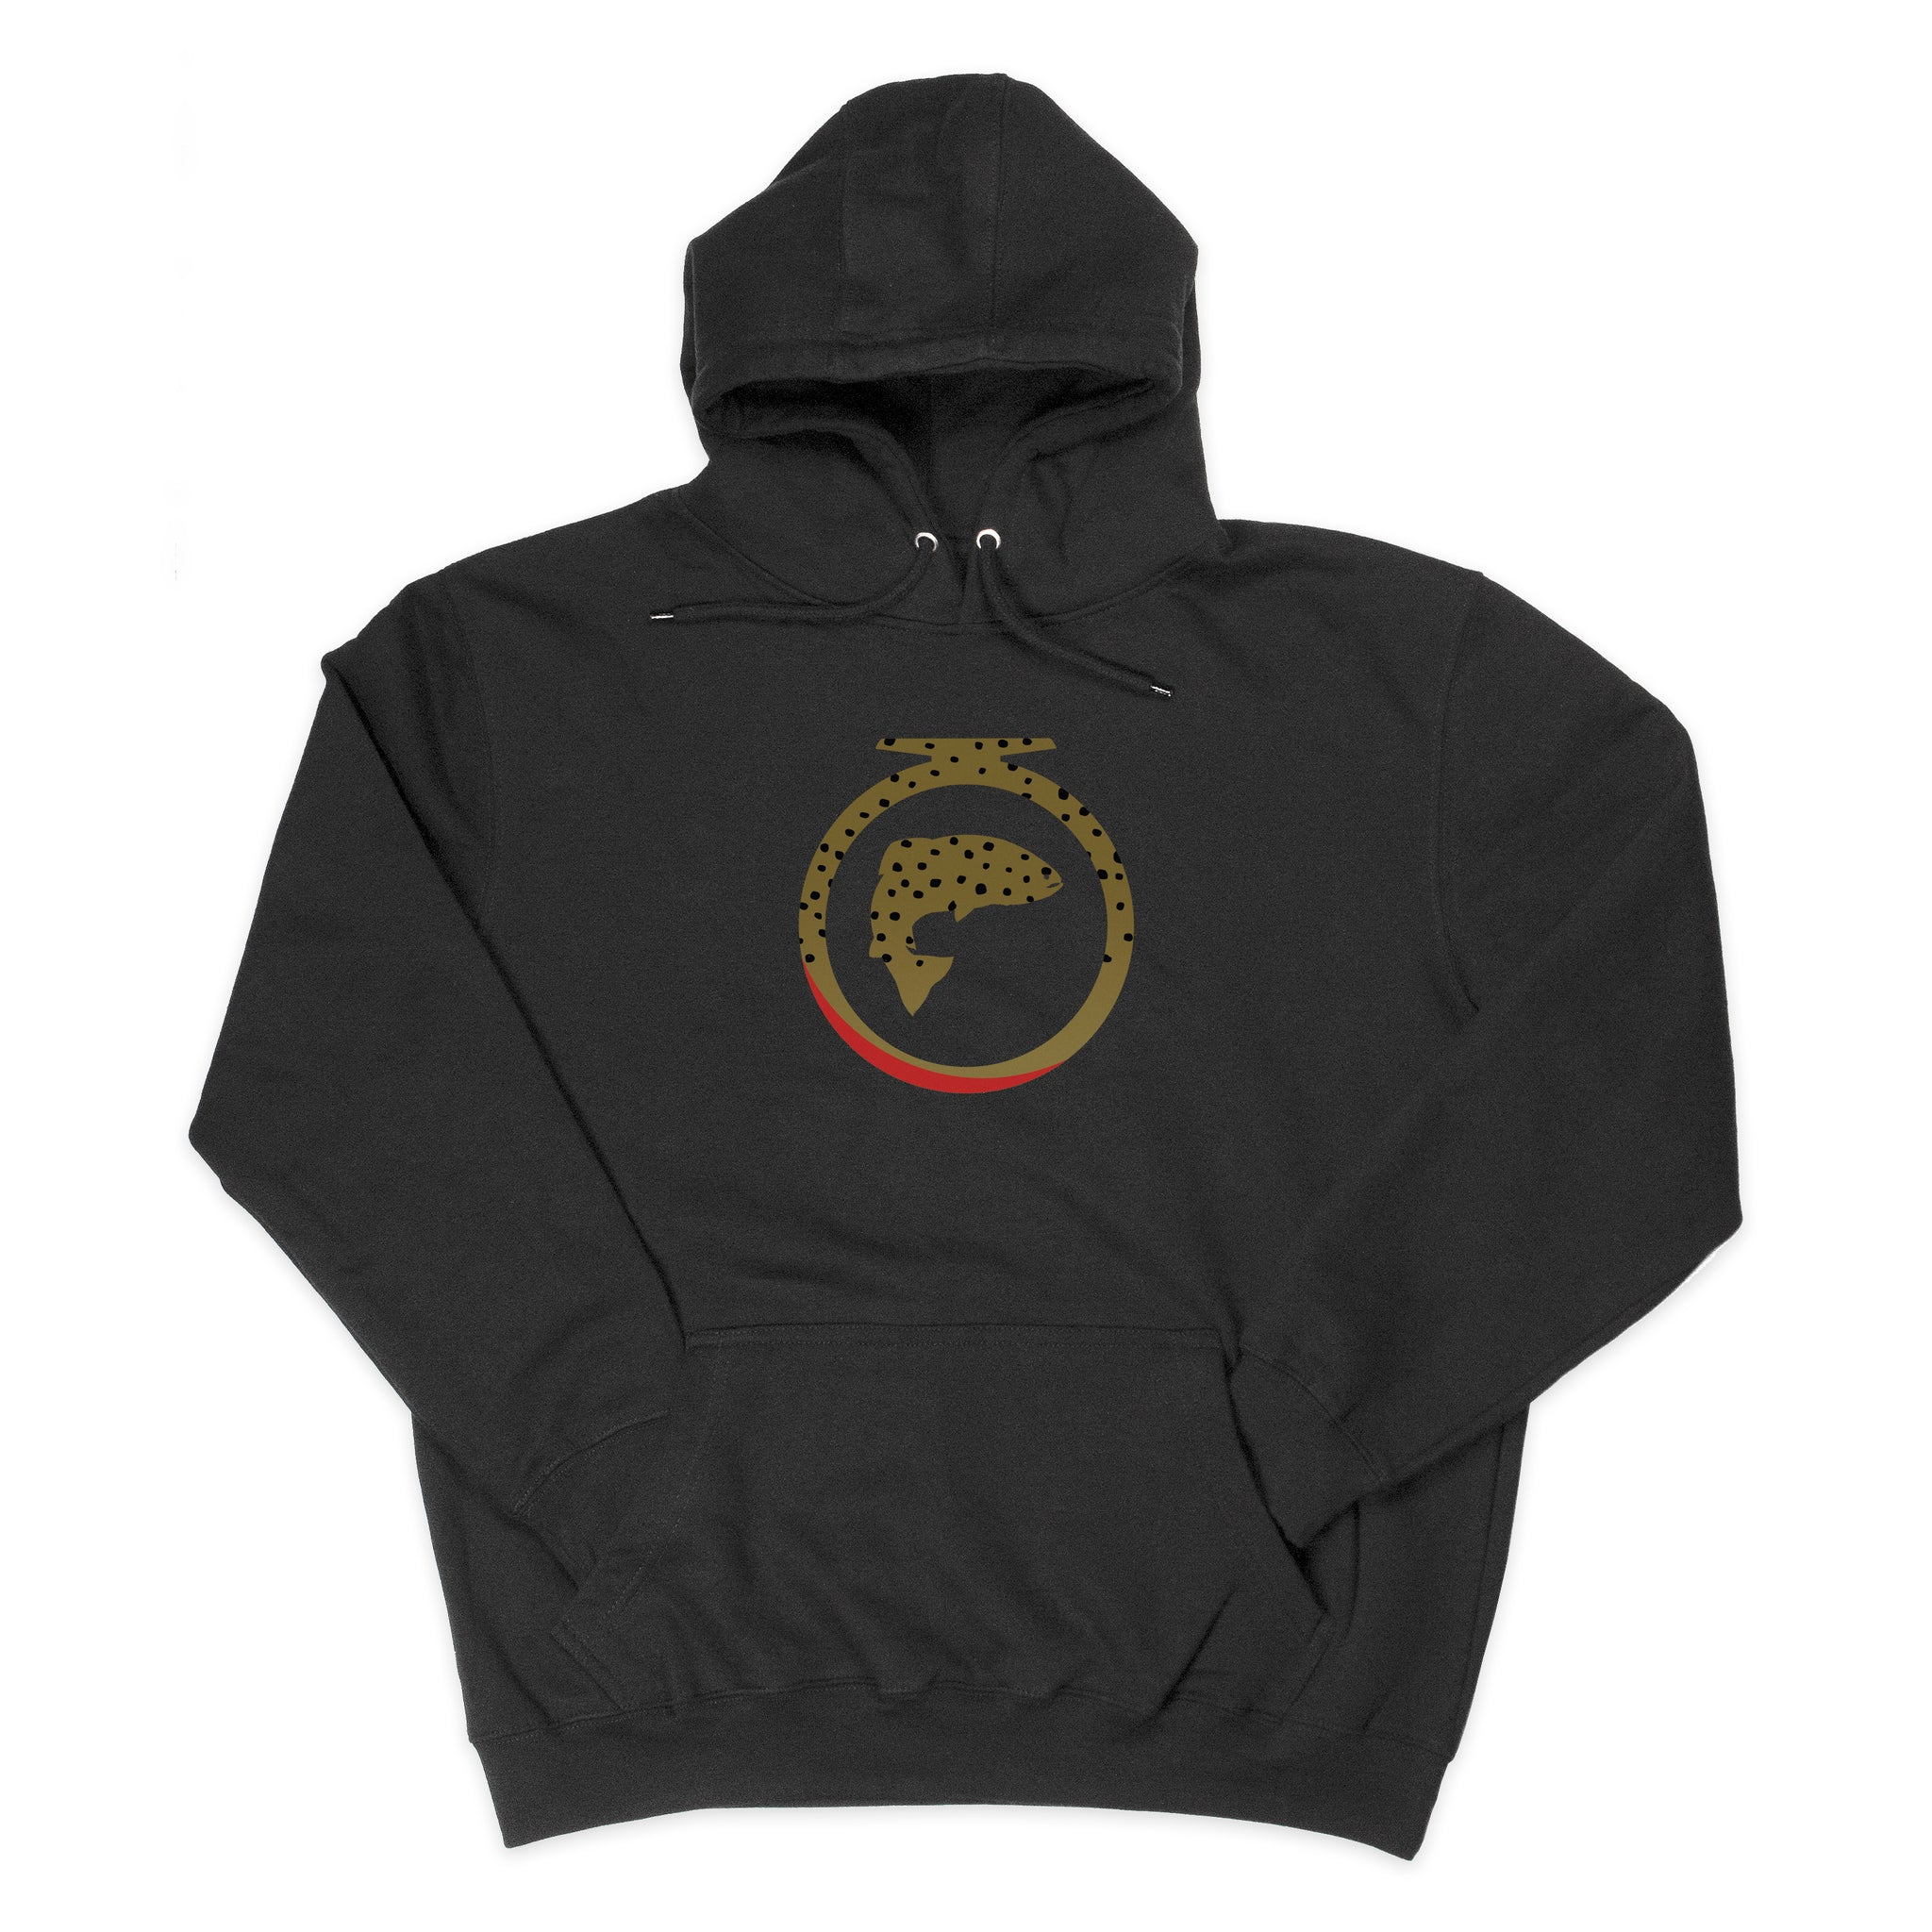 Skins Hoodie - Cutthroat Trout (Unisex)